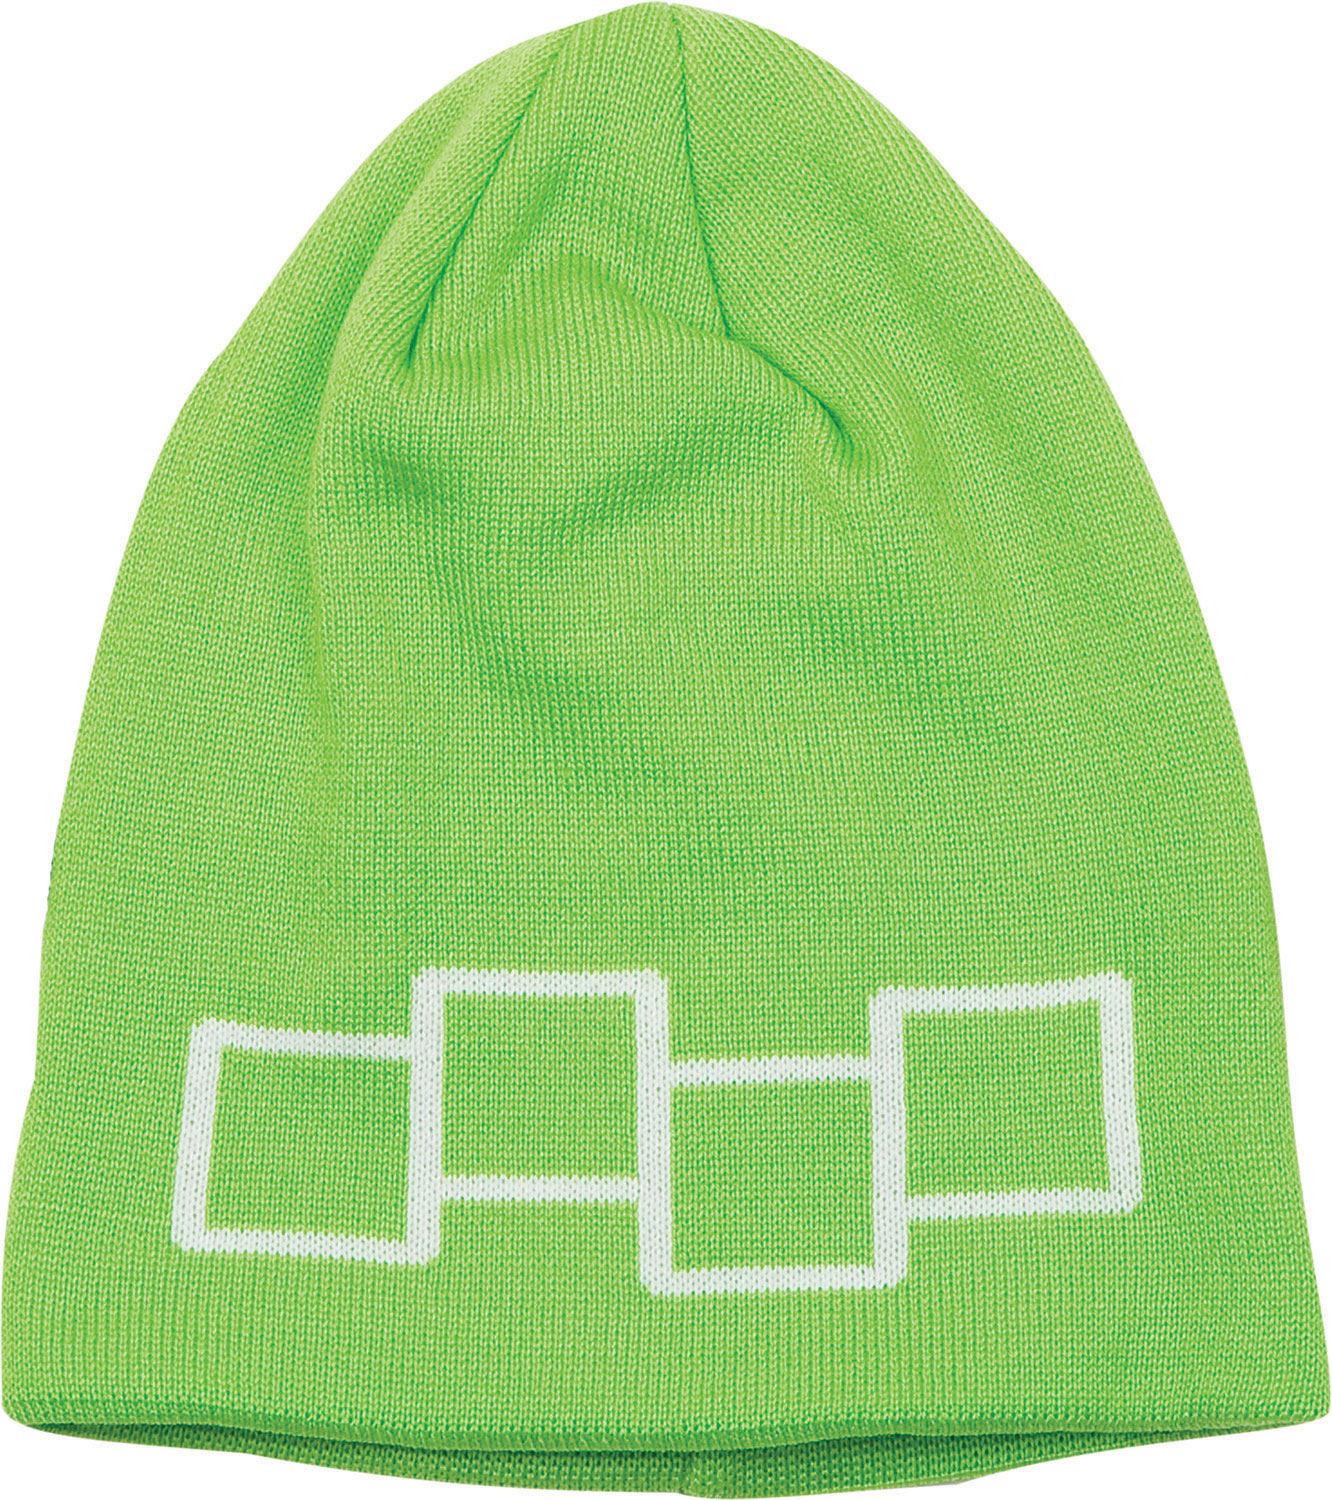 Snowboard Foursquare is bringing us one of their newer and smoother designed Beanies, with the new Foursquare Icon Beanie. With only the basic Foursquare logo outlined in white, the Icon beanie is simple and stellar. It's 100% acrylic and machine knit perfect to keep your head and ears warm as you're coasting down the slopes. Ladies don't feel left out its simple design can be worn by either men or women. Be smart and cover your ears before you catch a cold or an edge.Key Features of The Foursquare Icon Beanie: 100% acrylic Machine knit Engineer stripes Felt polar bear logo - $10.46